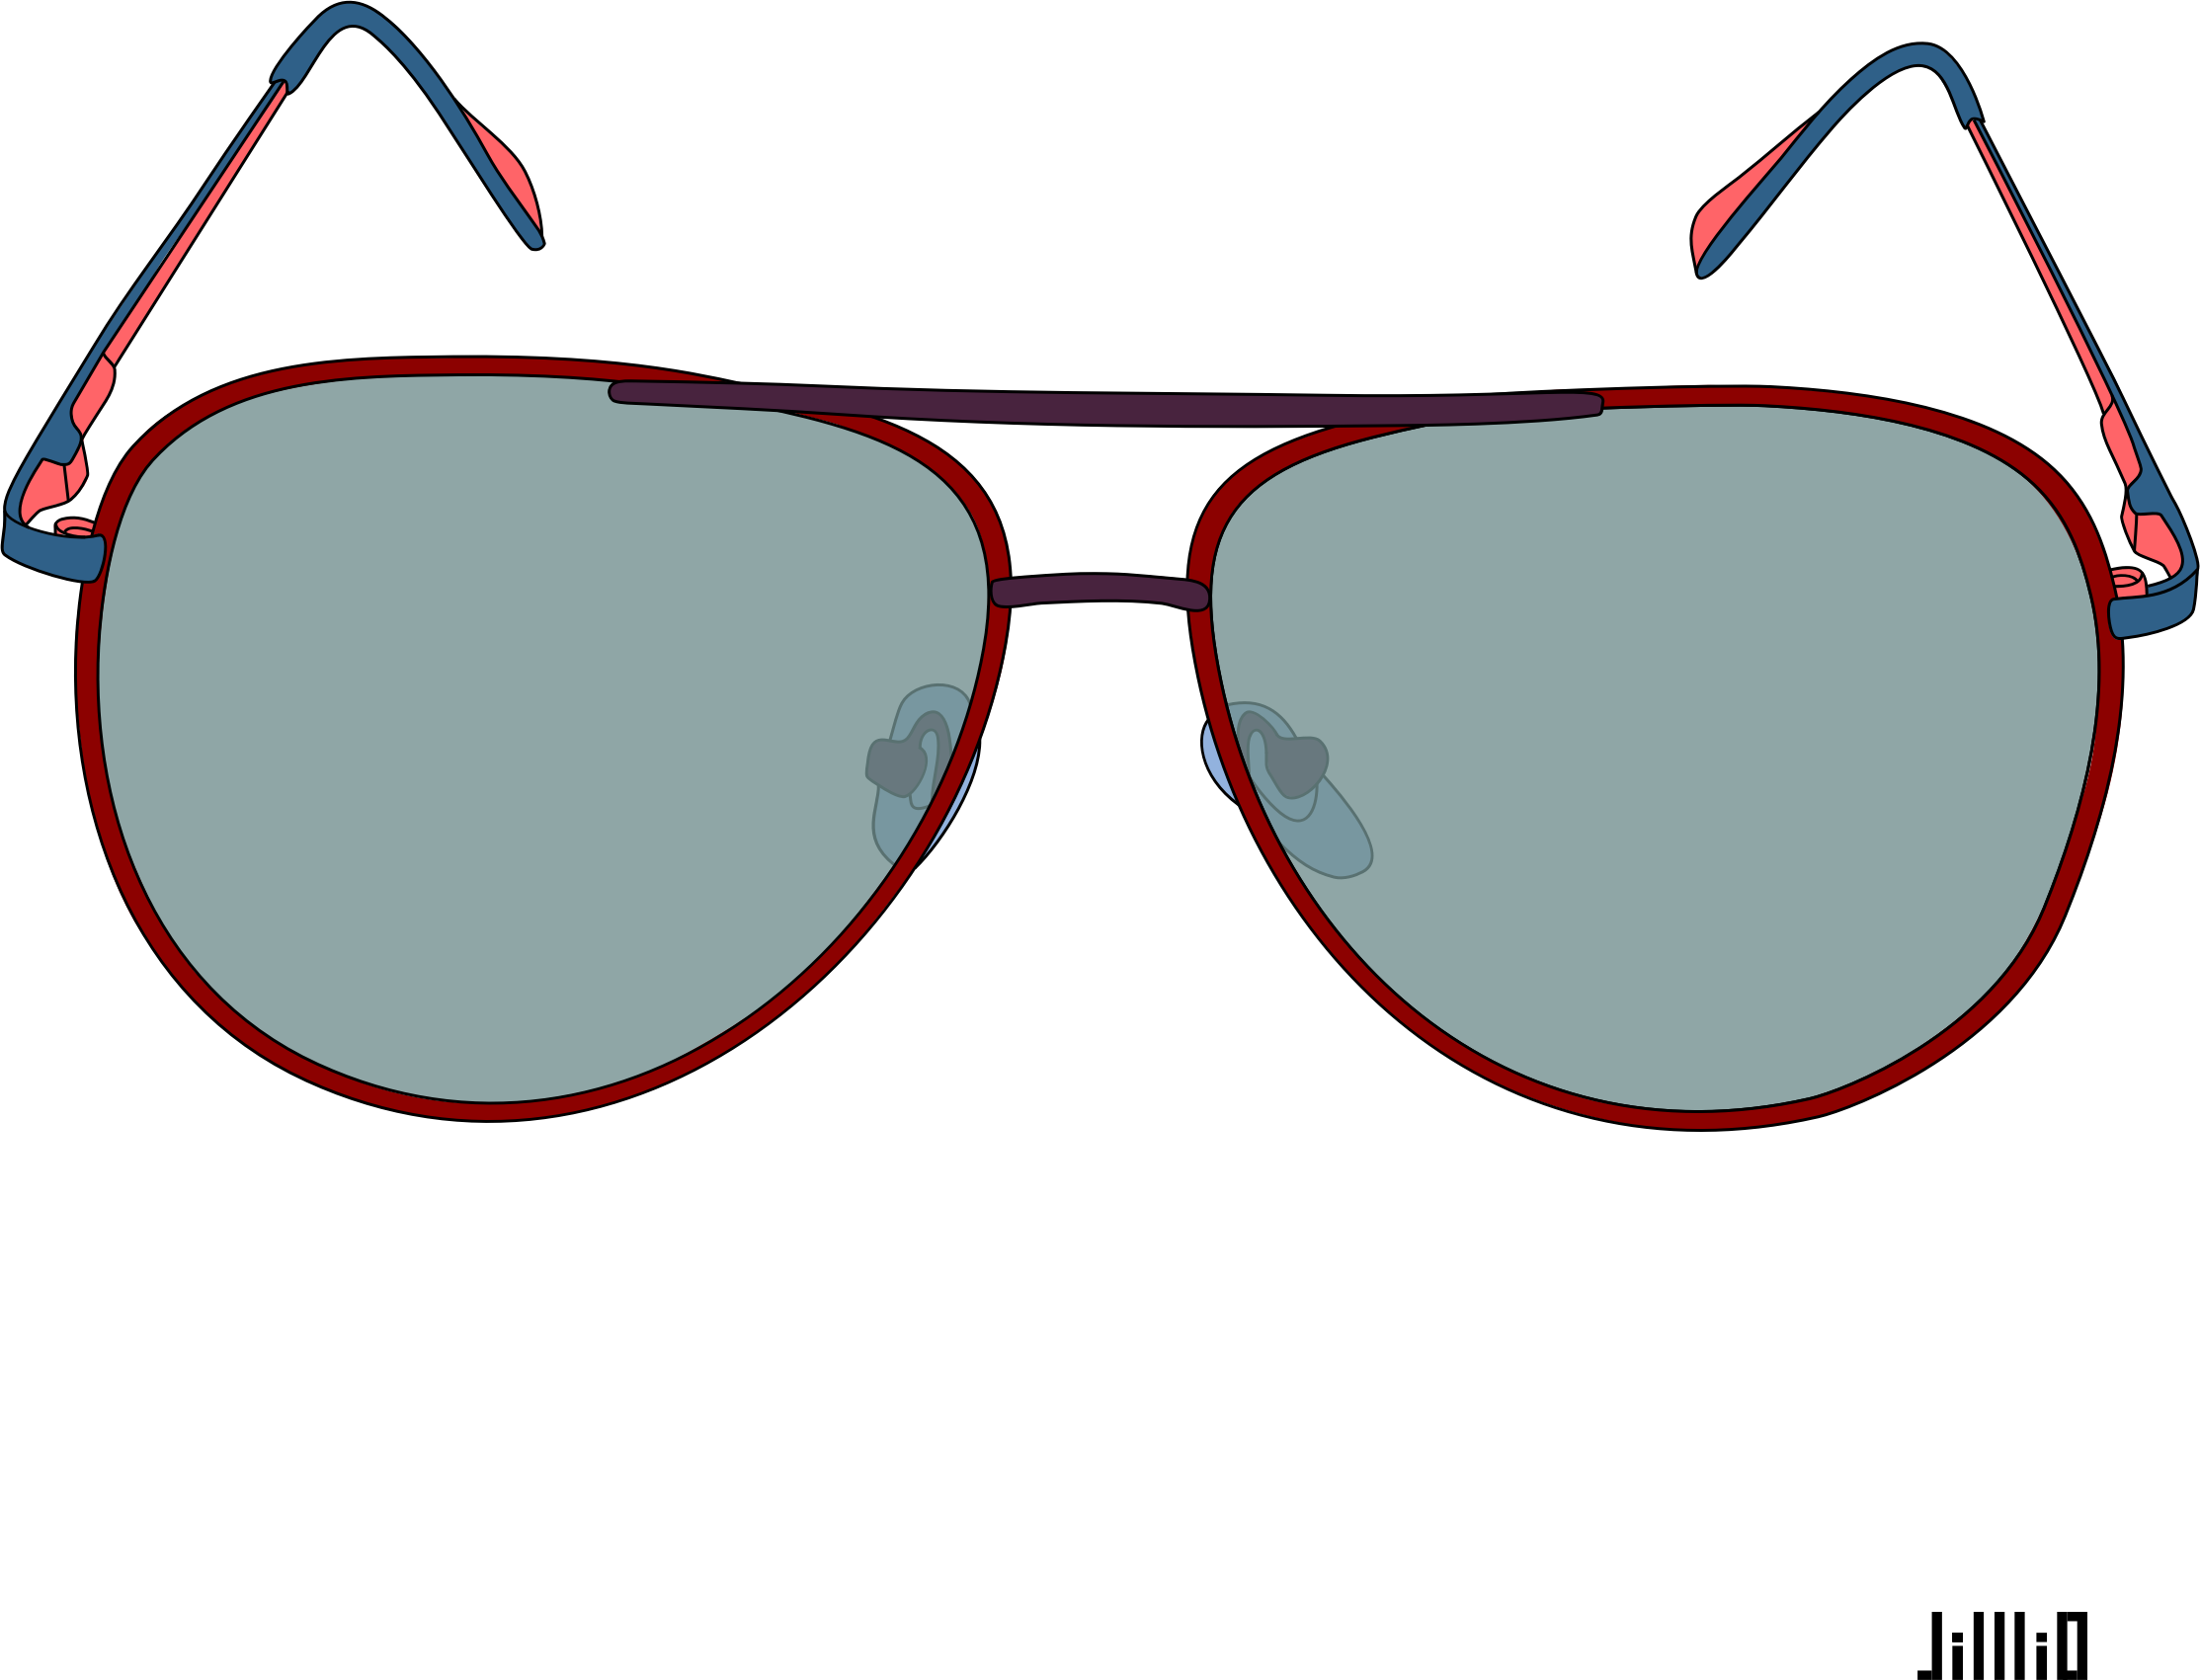 Glasses clipart glass frame. Color sunglasses big image